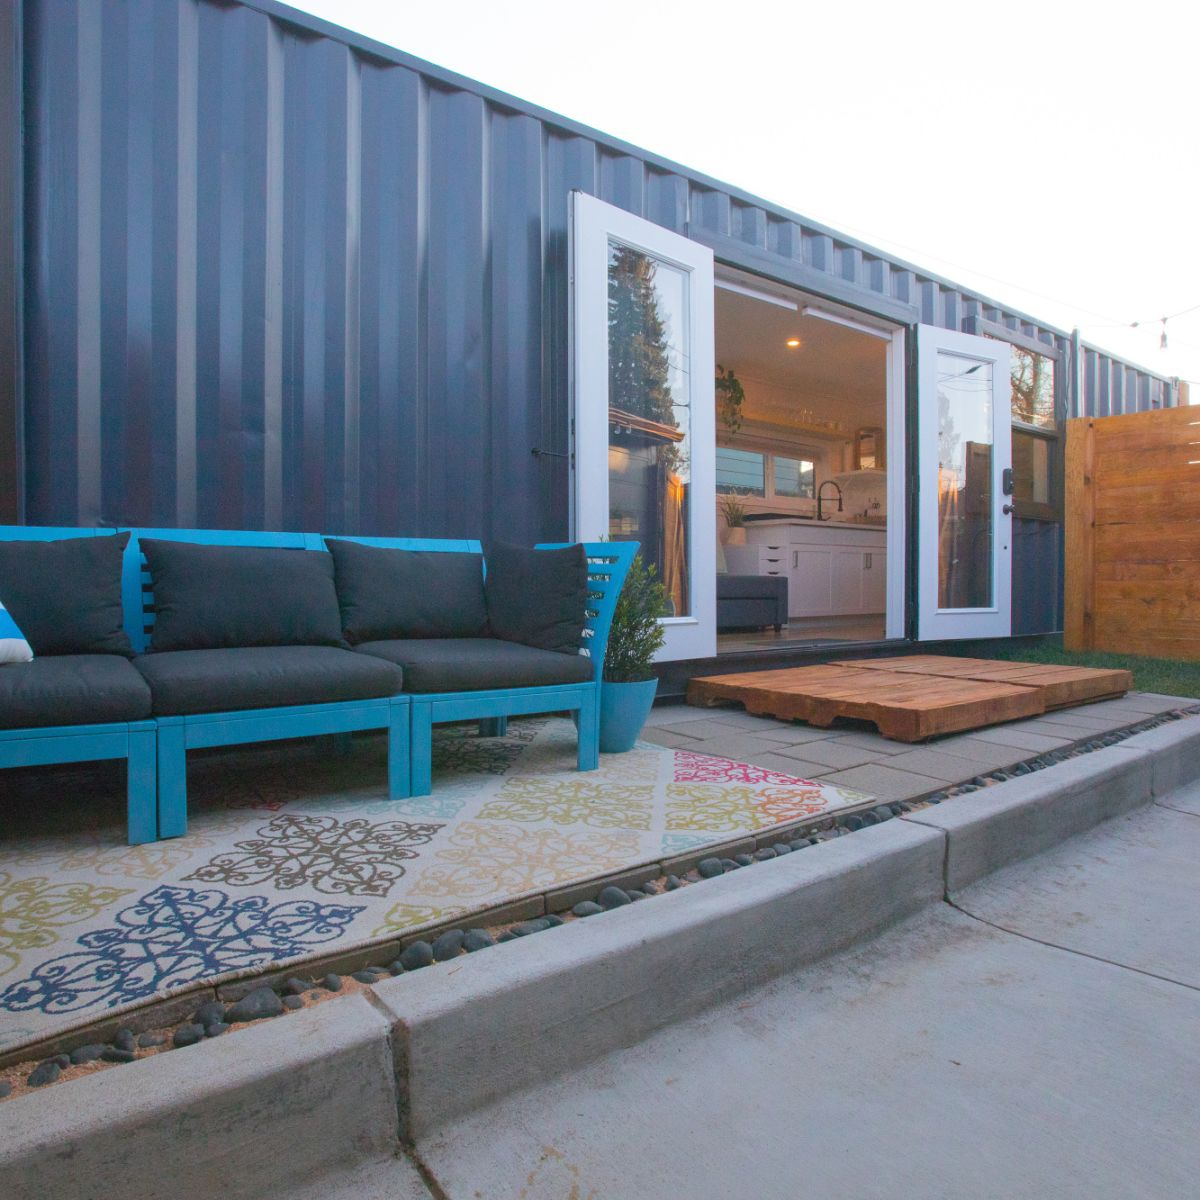 Houses For Rent Sites: Container Home For Rent In Las